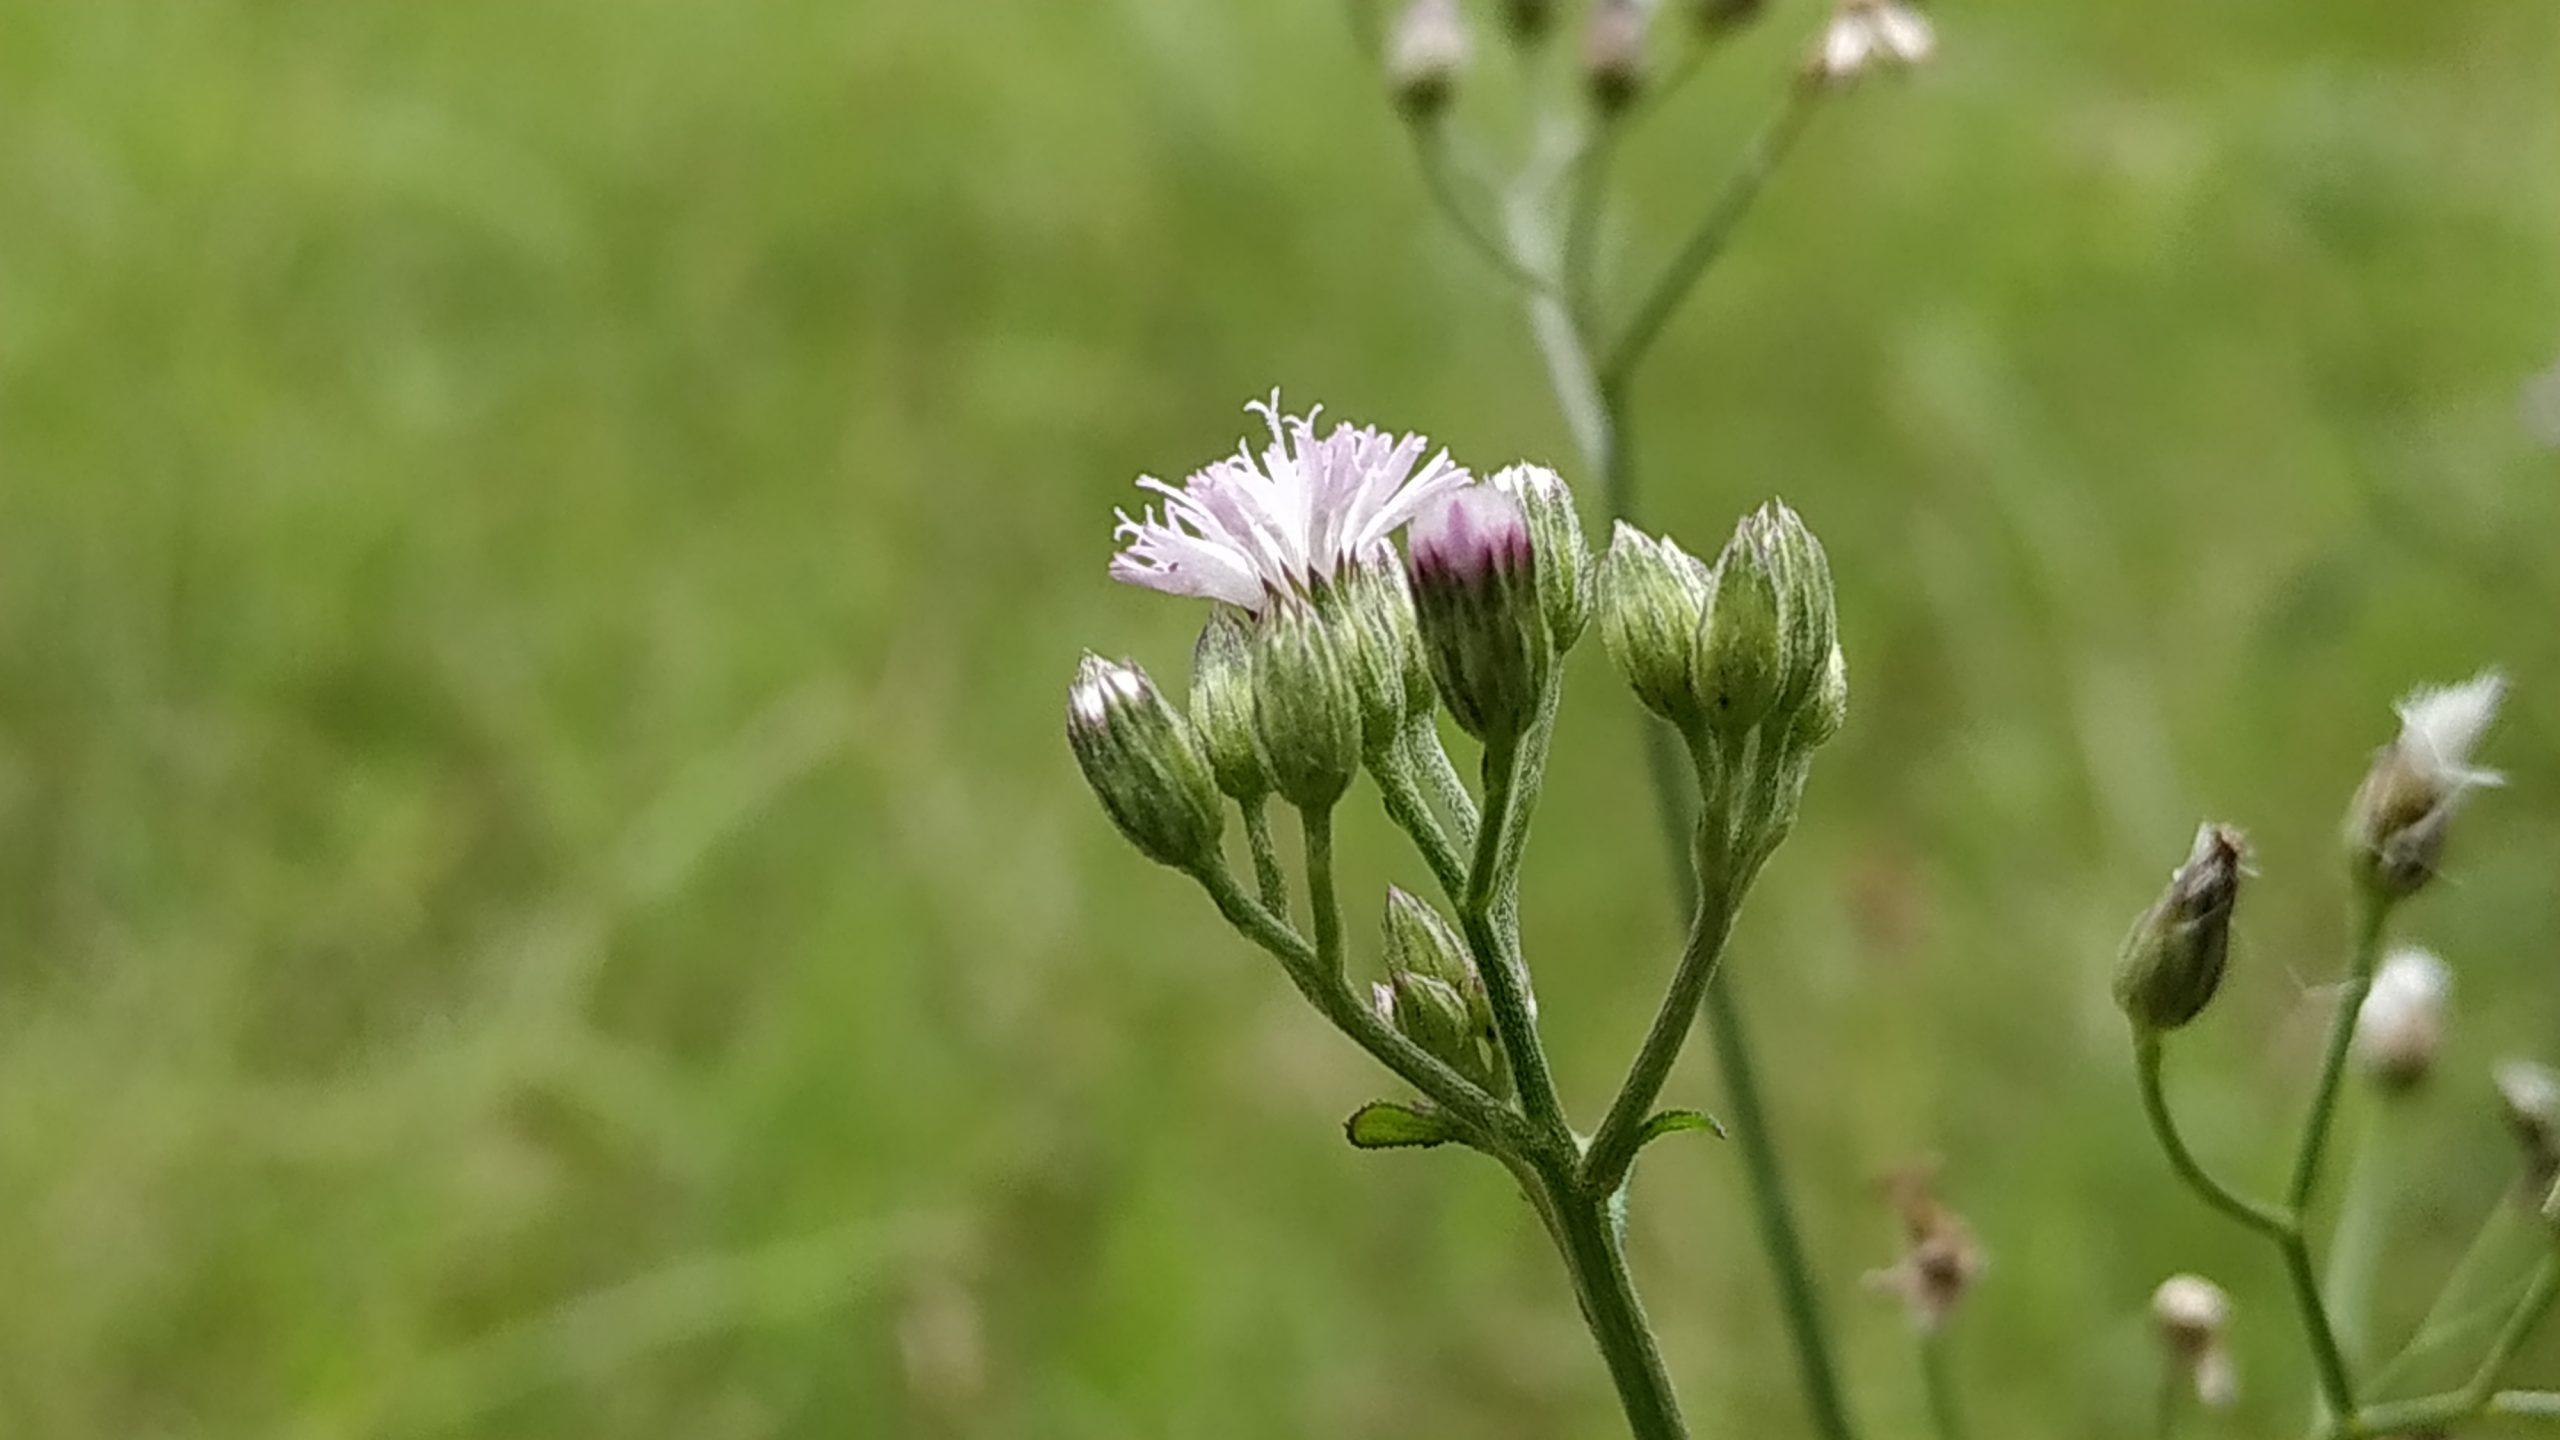 Buds of thistle flower